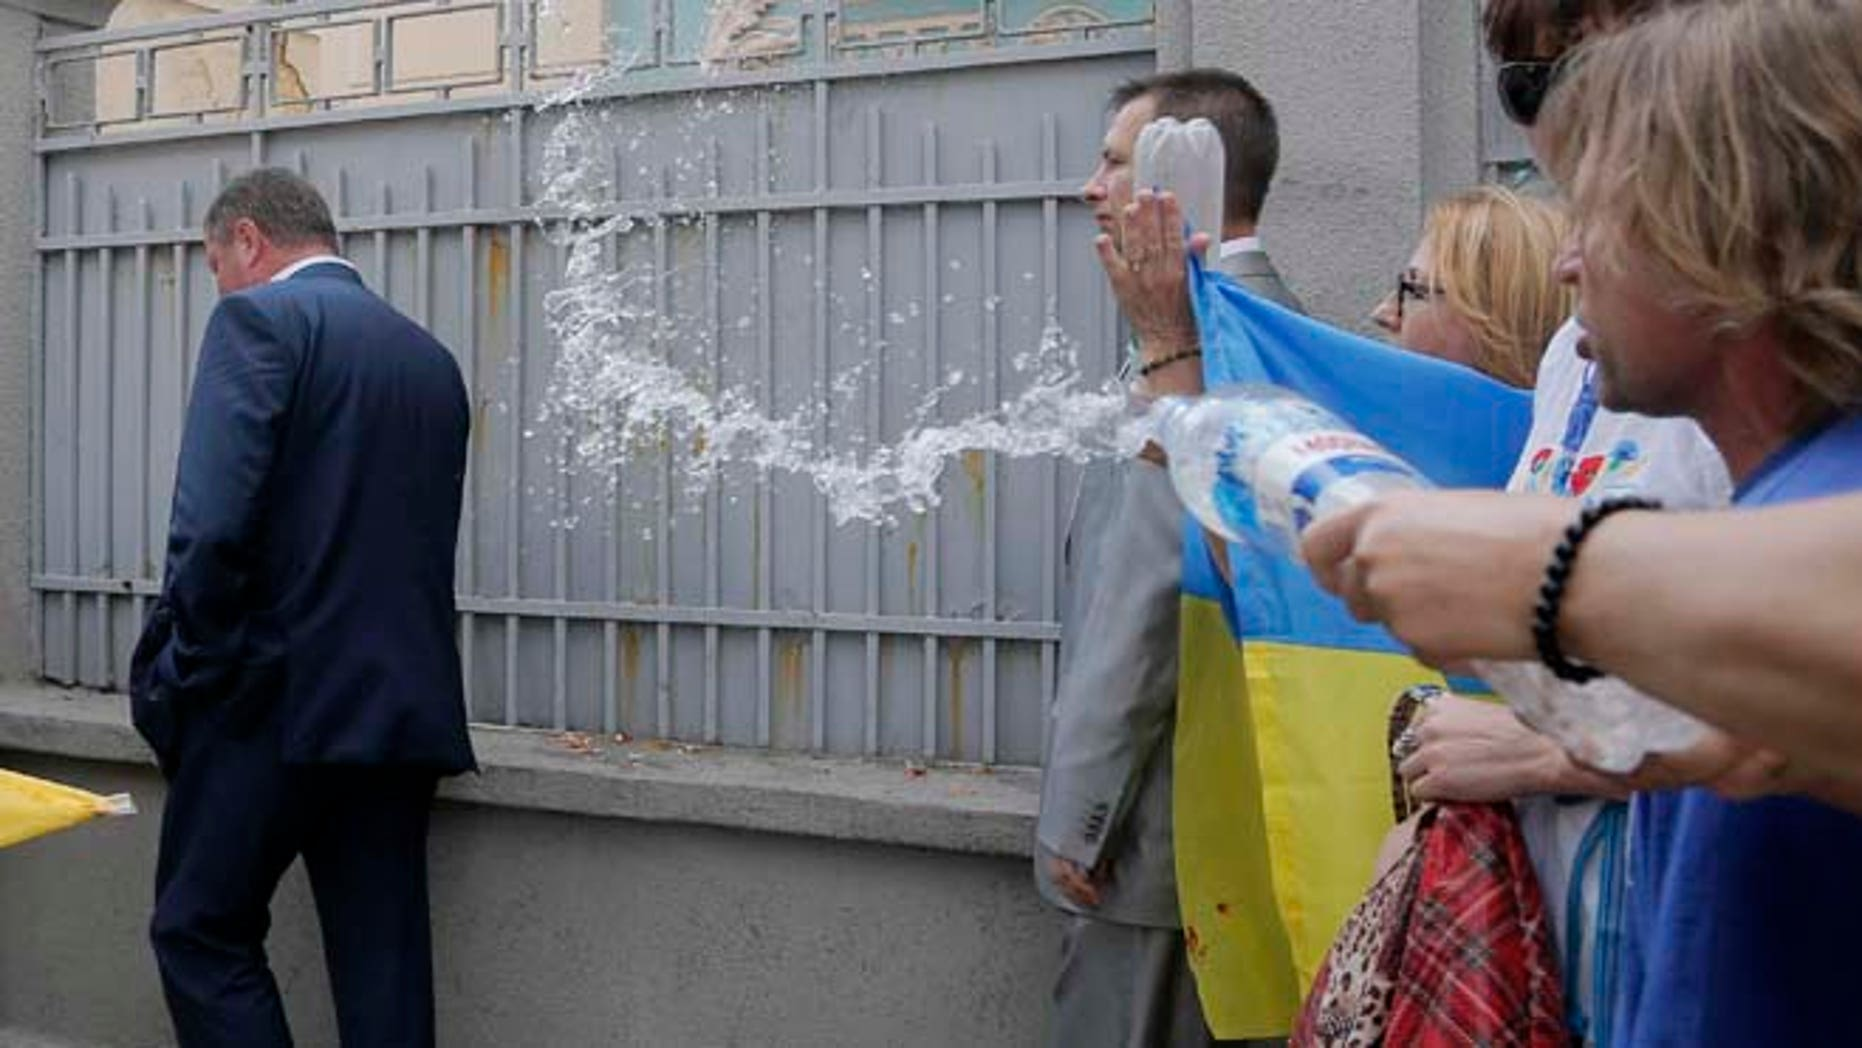 In this Tuesday, Aug. 12, 2014 file photo, activists throw water at various lawmakers as they demonstrate to demand sanctions against Russia, during a protest opposite the parliament building in Kiev, Ukraine.